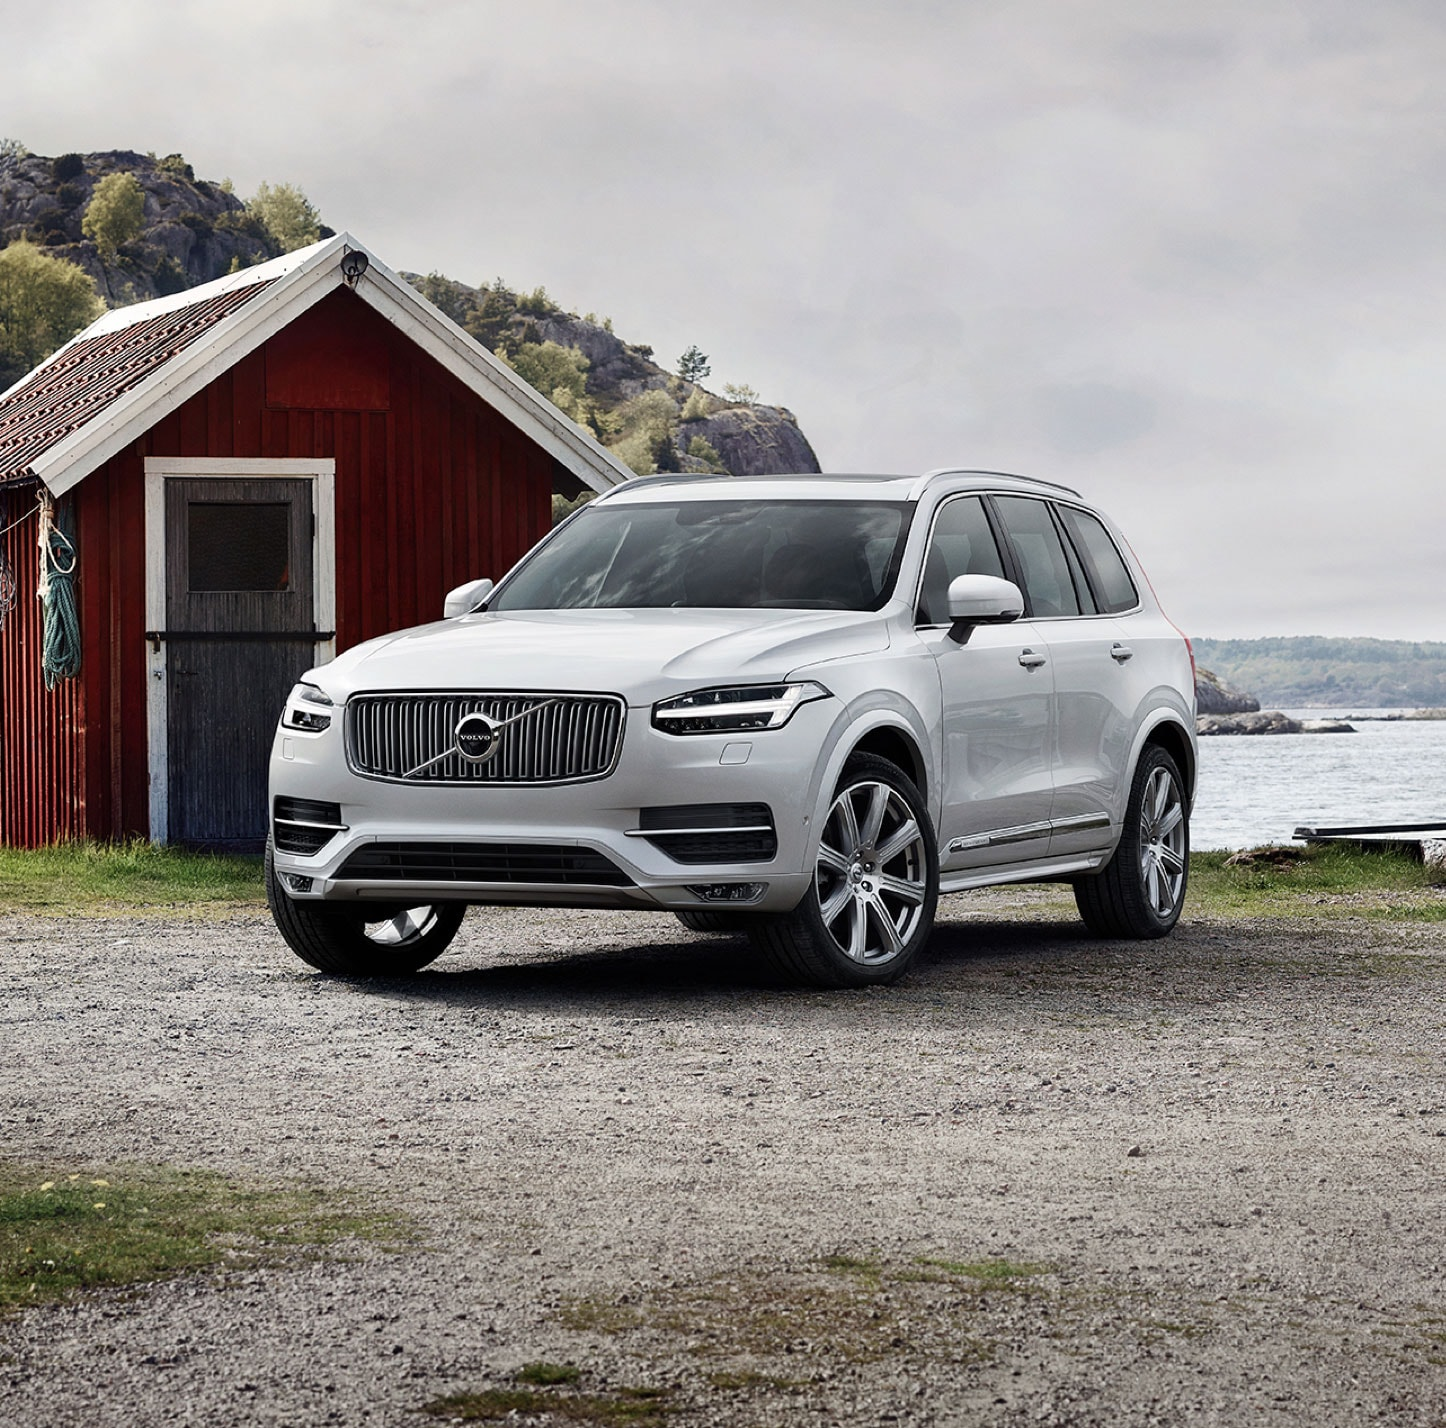 Mitchell Volvo Cars Of Simsbury: New Volvo & Used Car